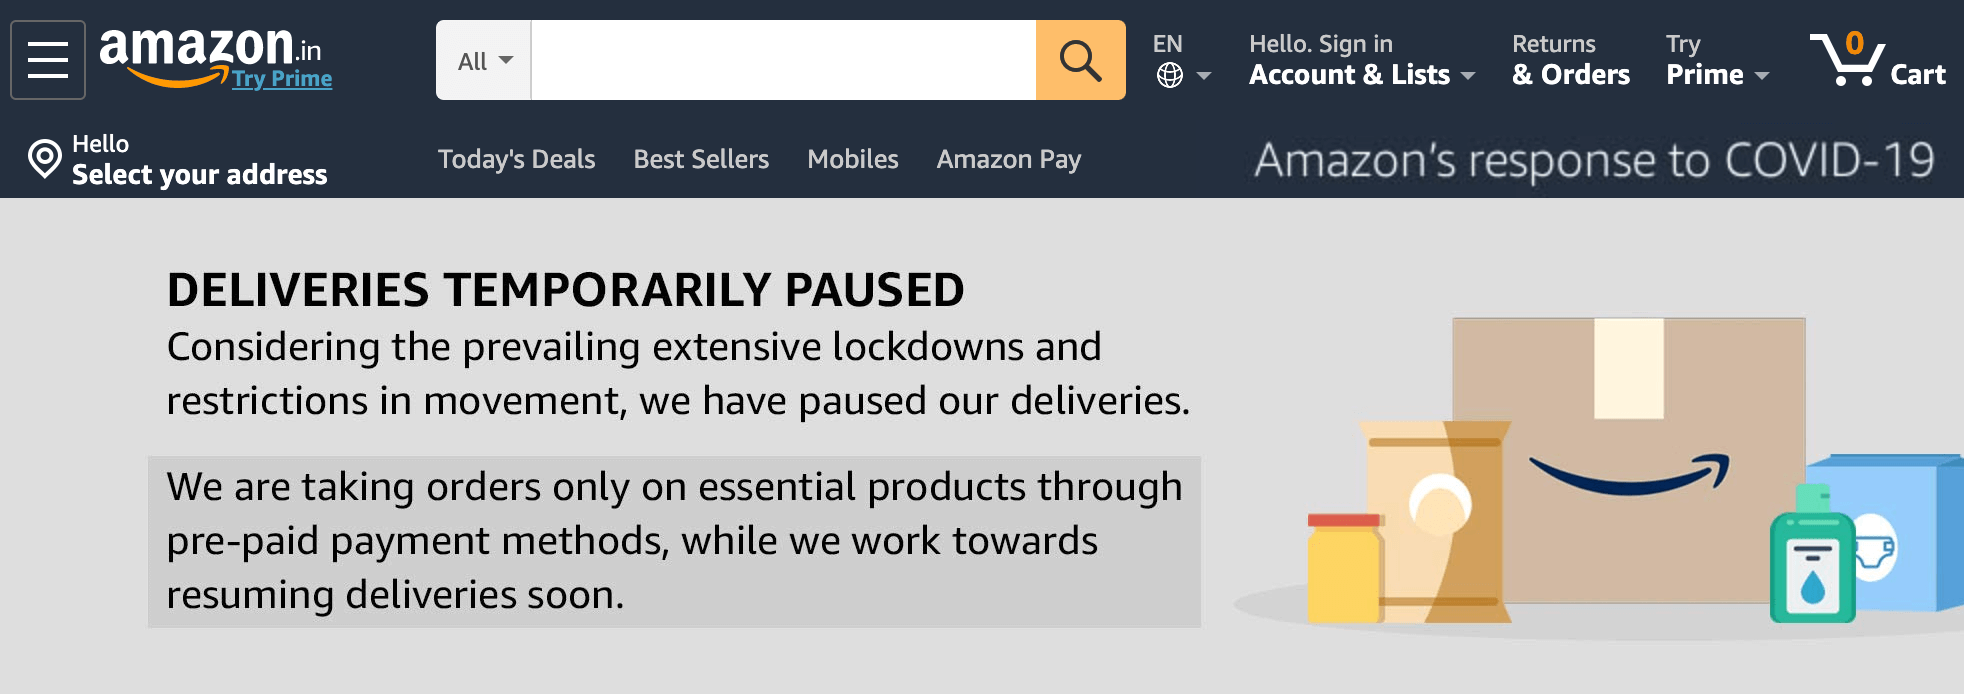 Amazon India Suspended Deliveries